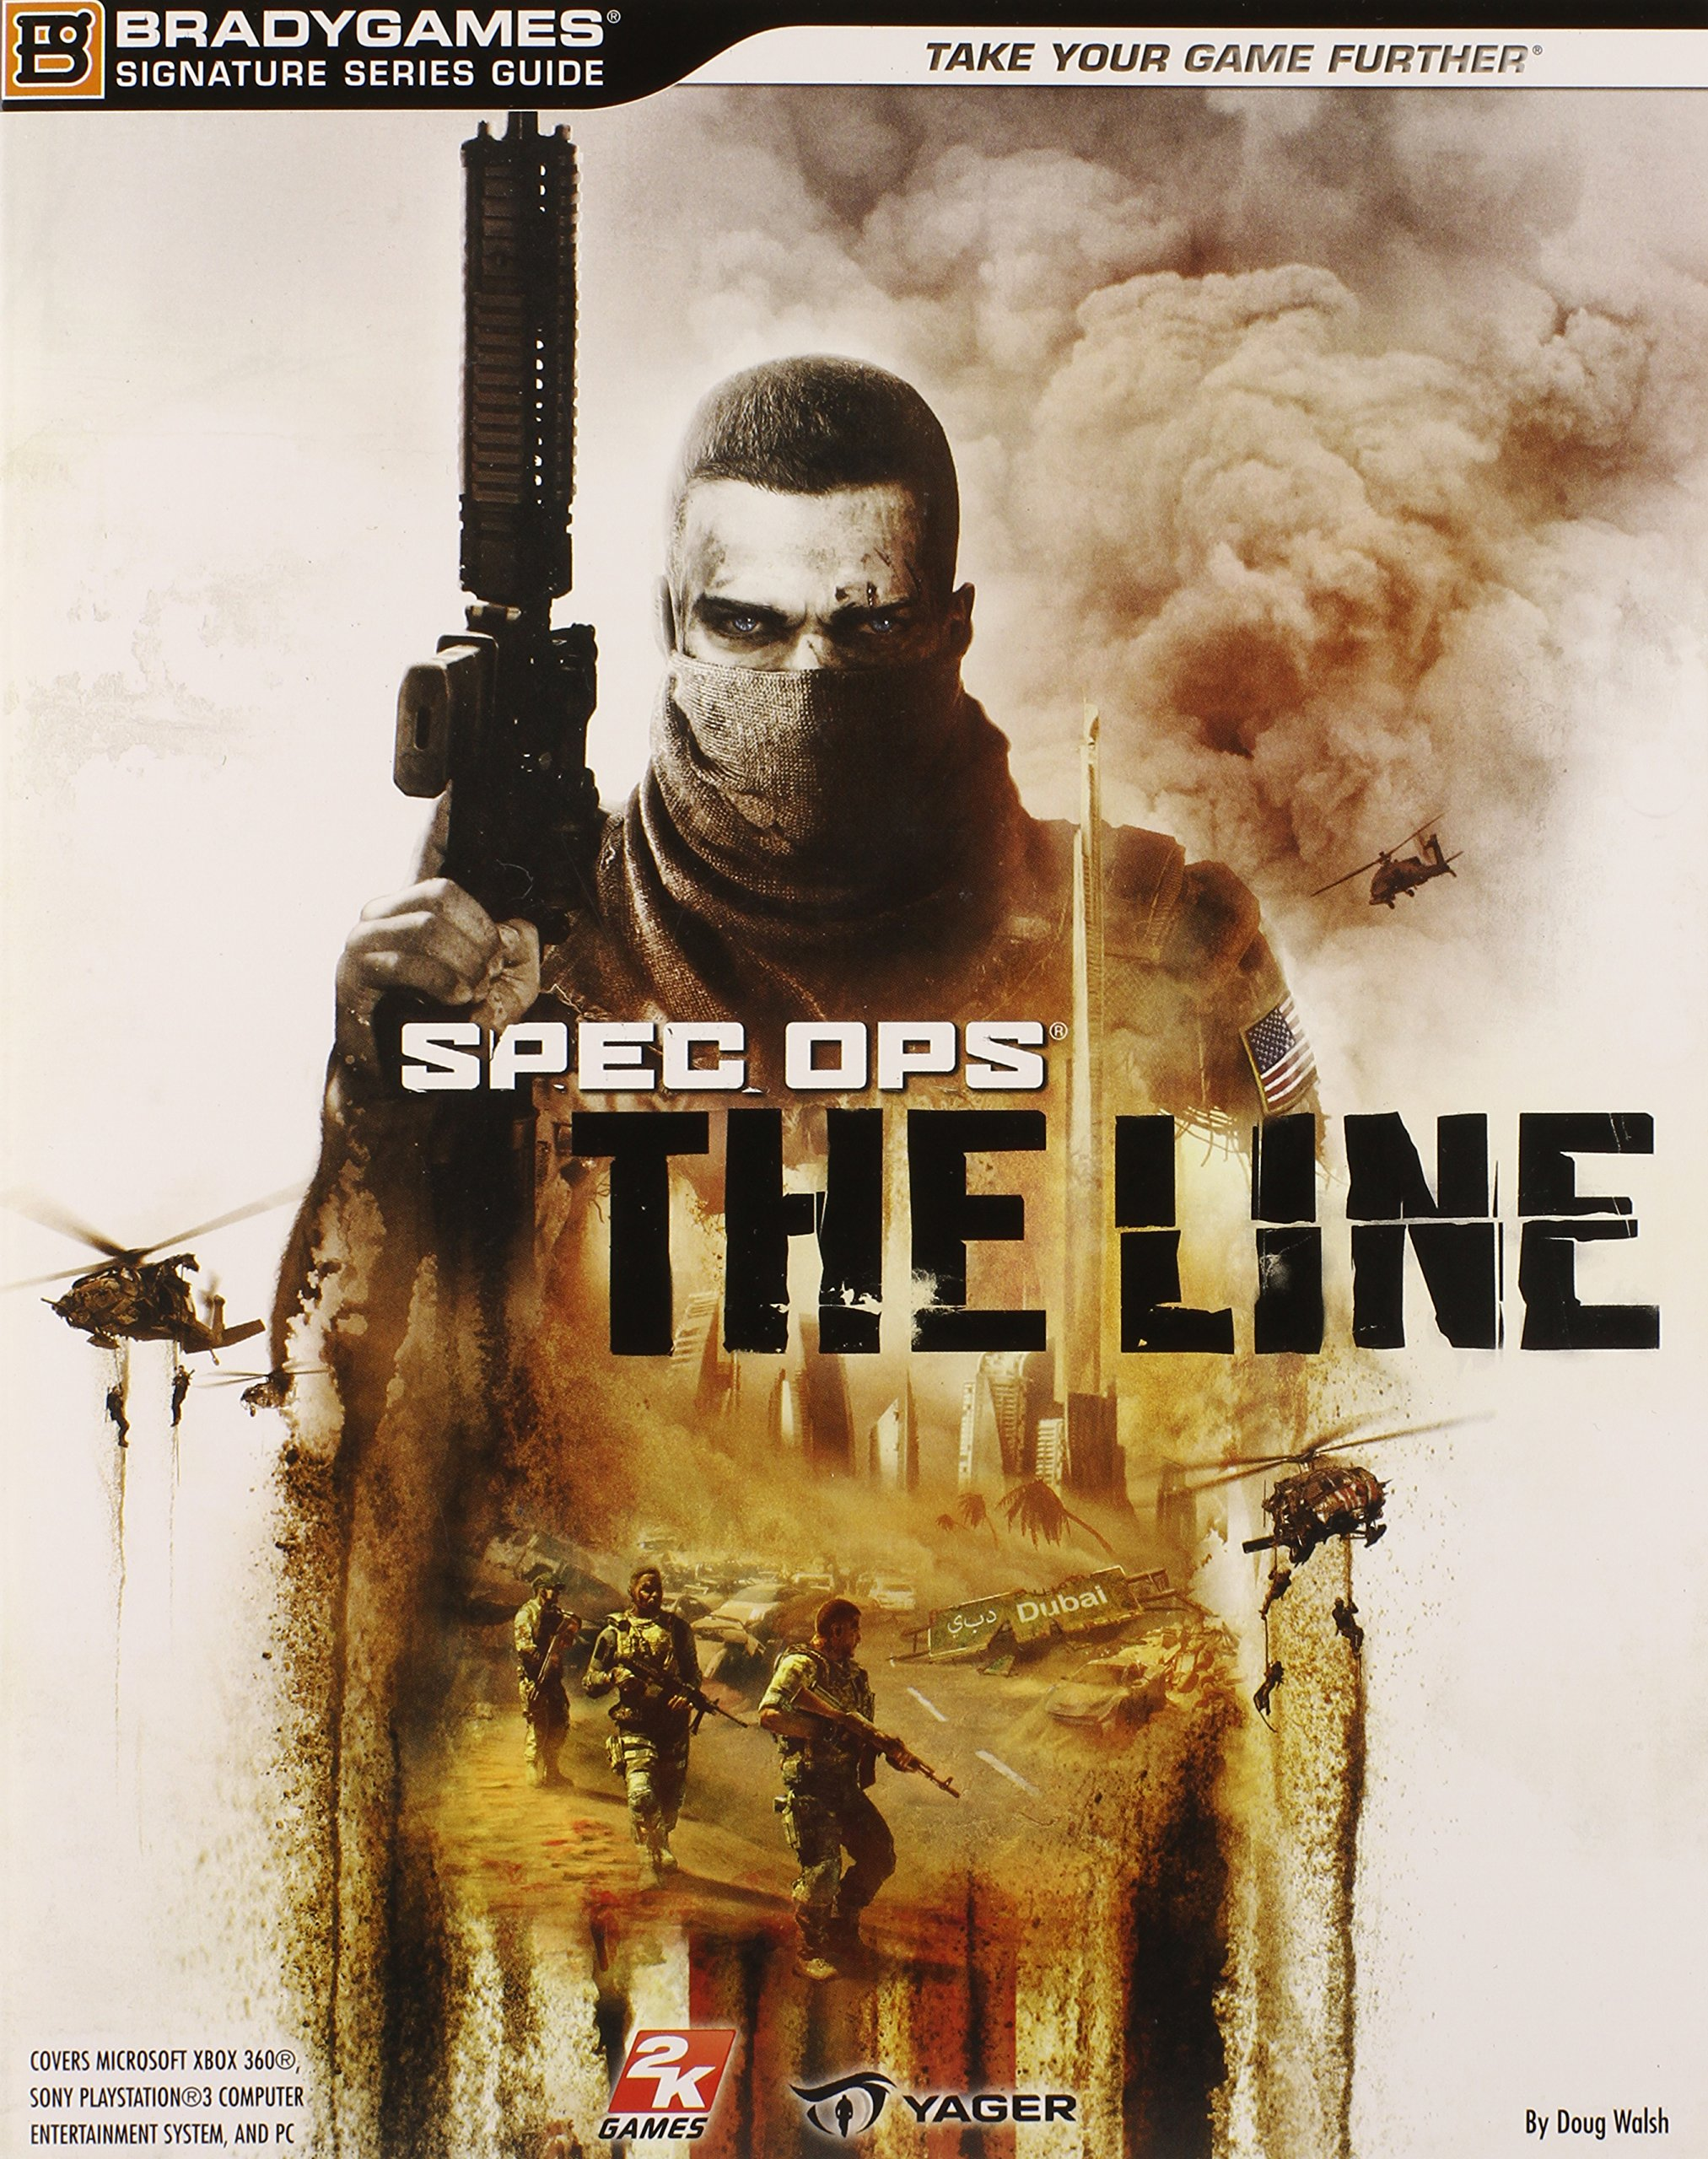 Download Spec Ops: The Line Signature Series Guide (Signature Series Guides) pdf epub